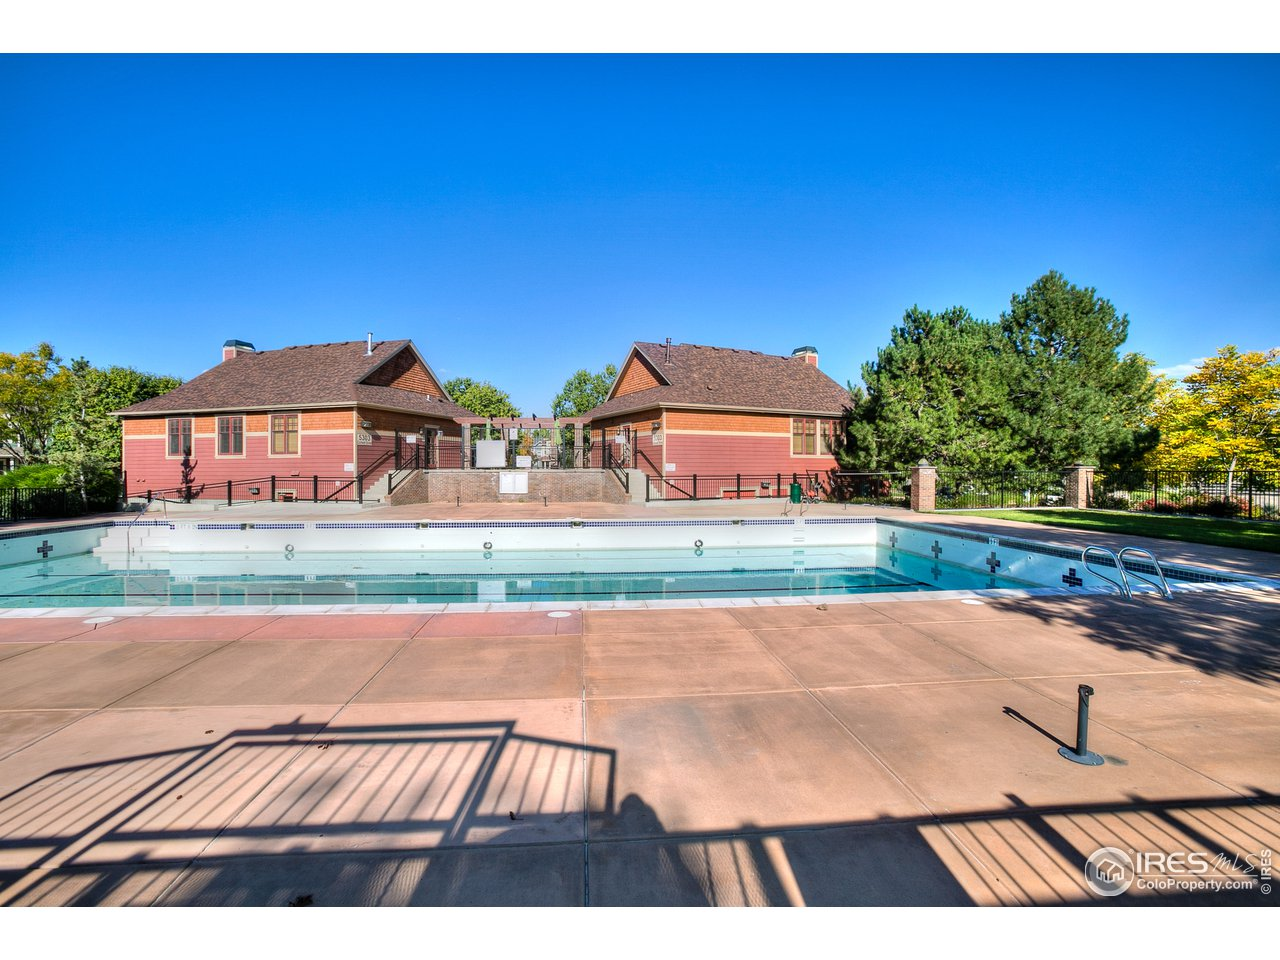 Community pool steps away from your new home!